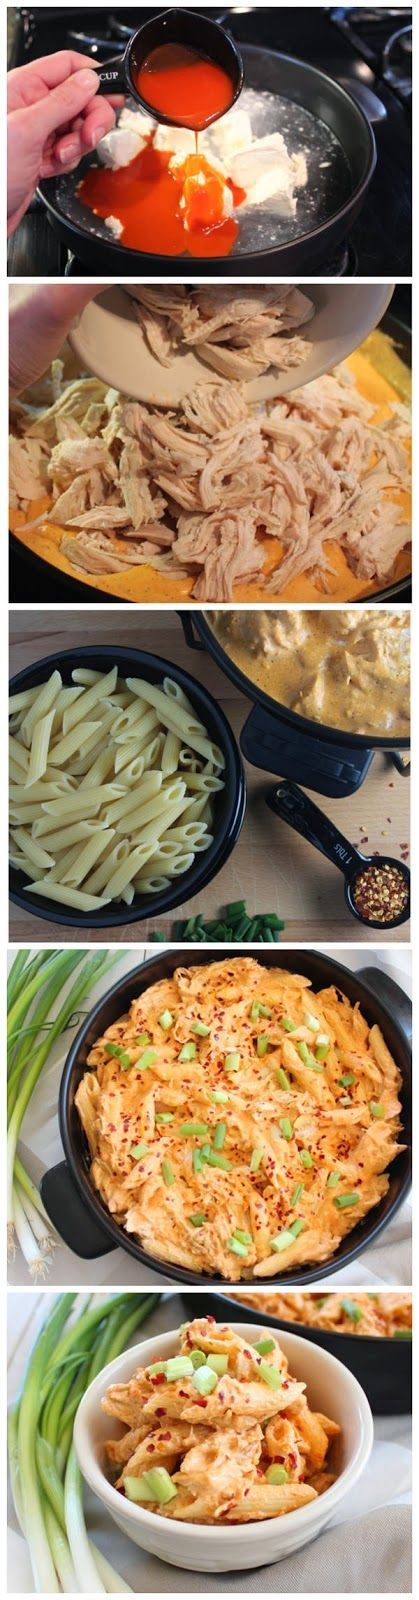 This looks like an amazing recipe for Buffalo Chicken Cheesy Penne that is quick to prepare!